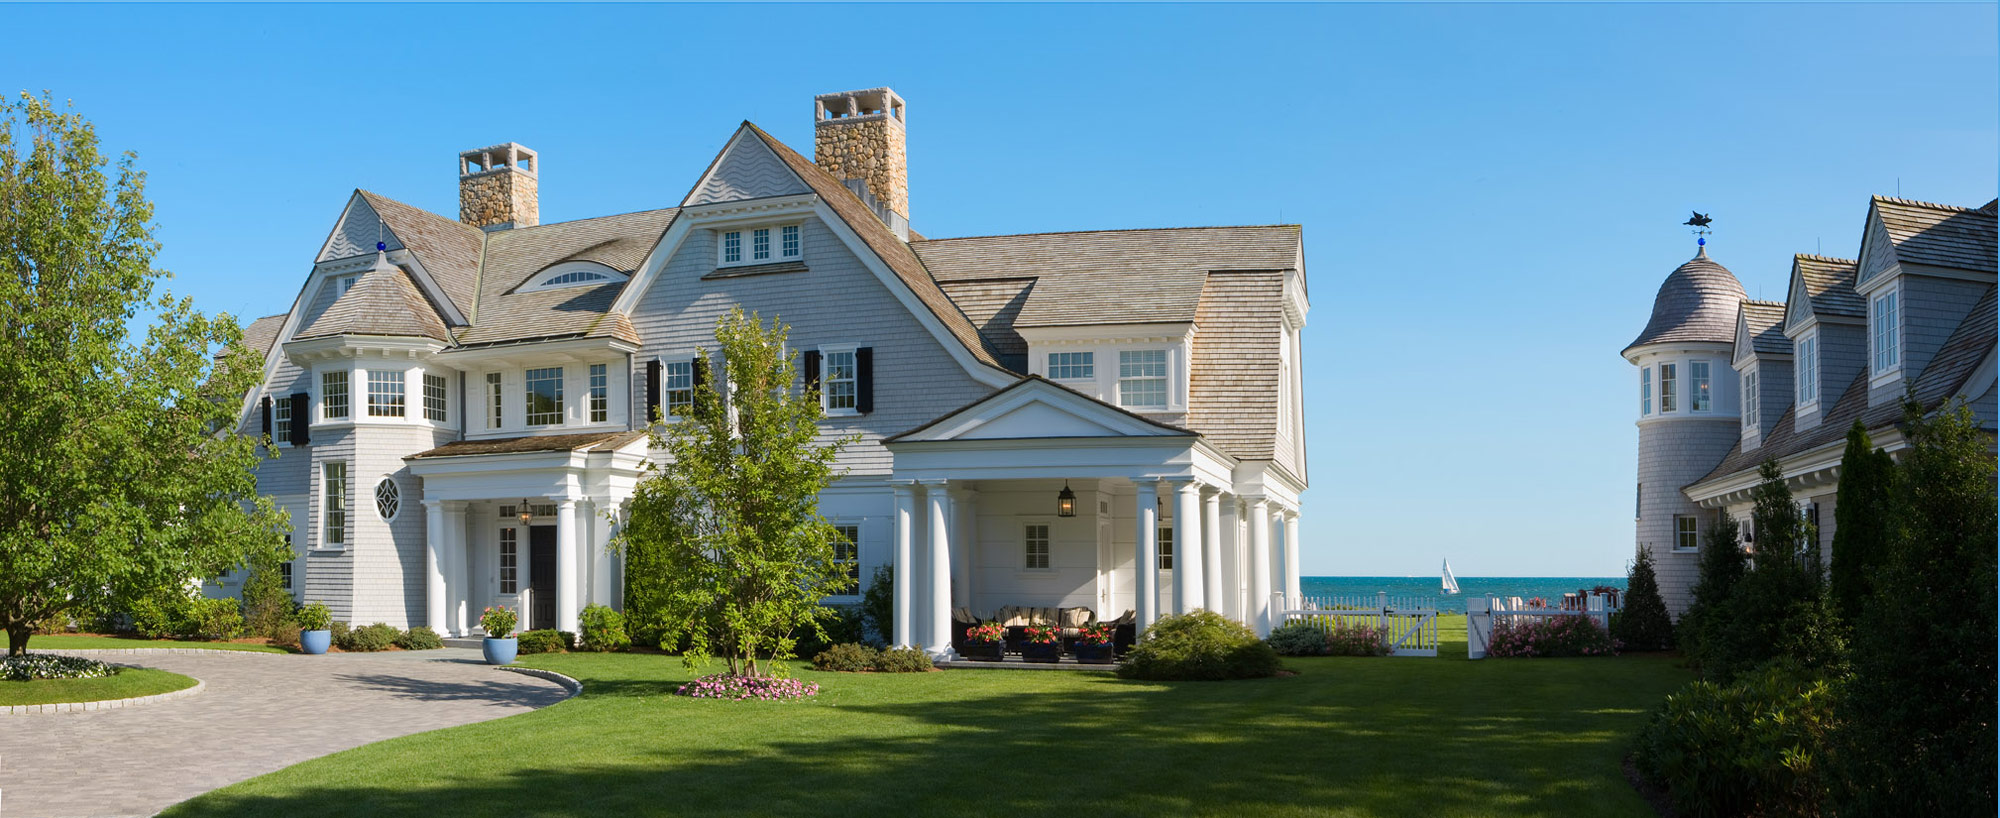 Beautiful waterfront home in Osterville, MA